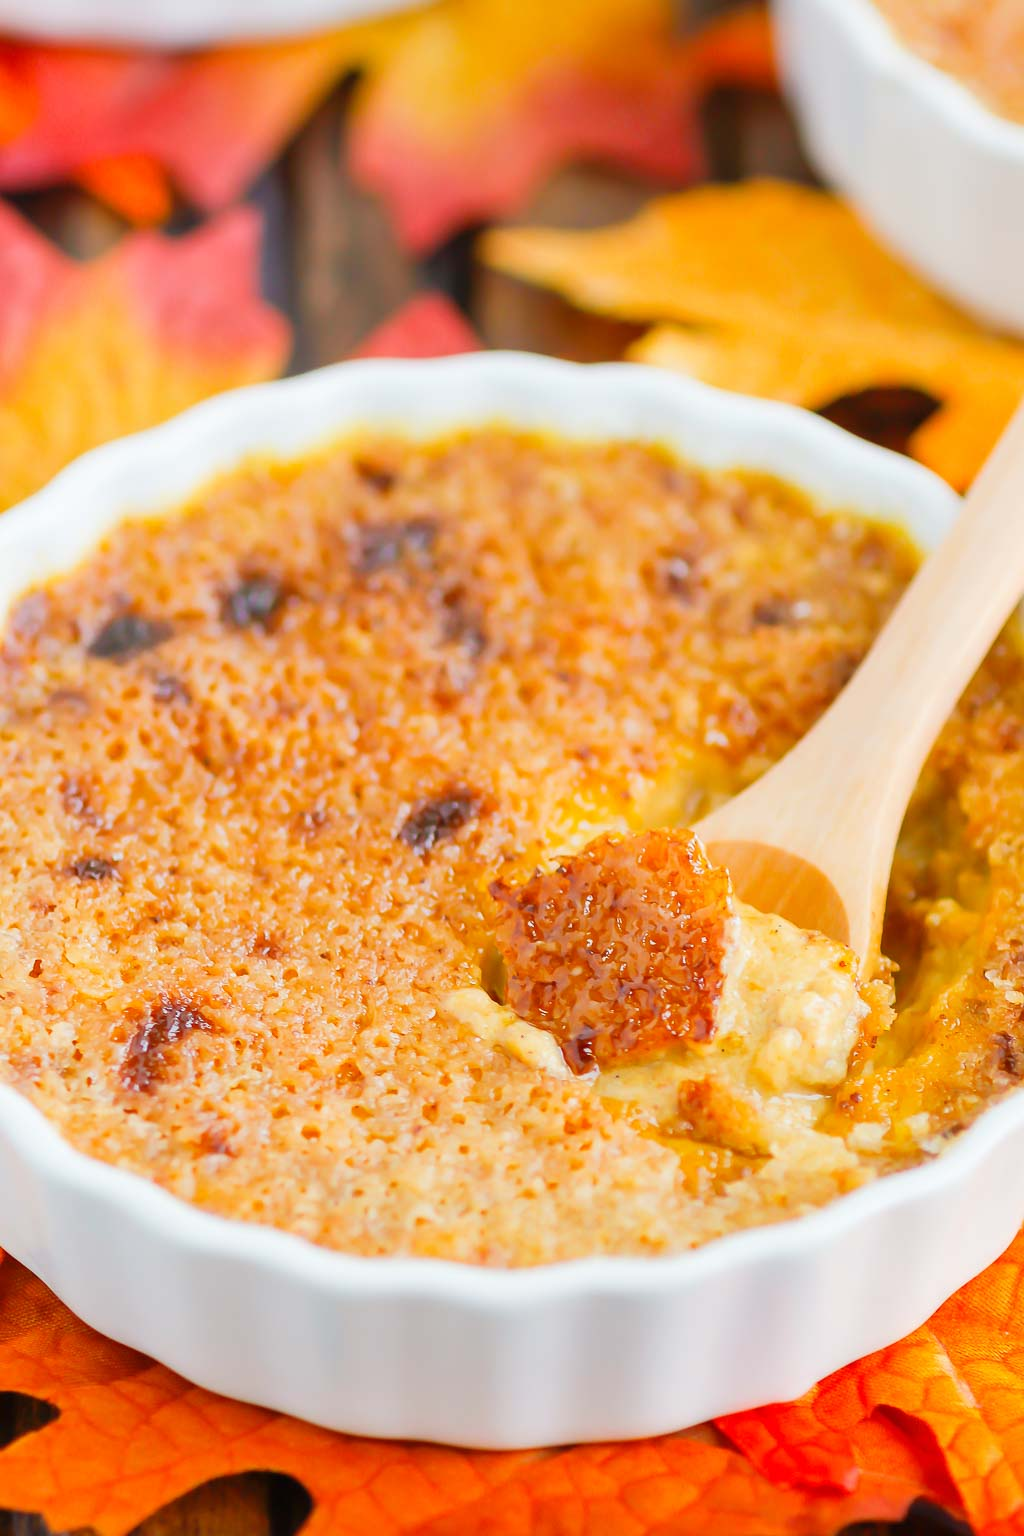 Pumpkin Crème Brûlée features a smooth and creamy custard that's studded with hints of pumpkin and the most delicious caramelized topping. Easy to make, this decadent dessert captures the flavors of fall and is sure to impress everyone! #cremebrulee #pumpkin #pumpkincremebrulee #cremebruleerecipe #falldessert #pumpkindessert #fancydessert